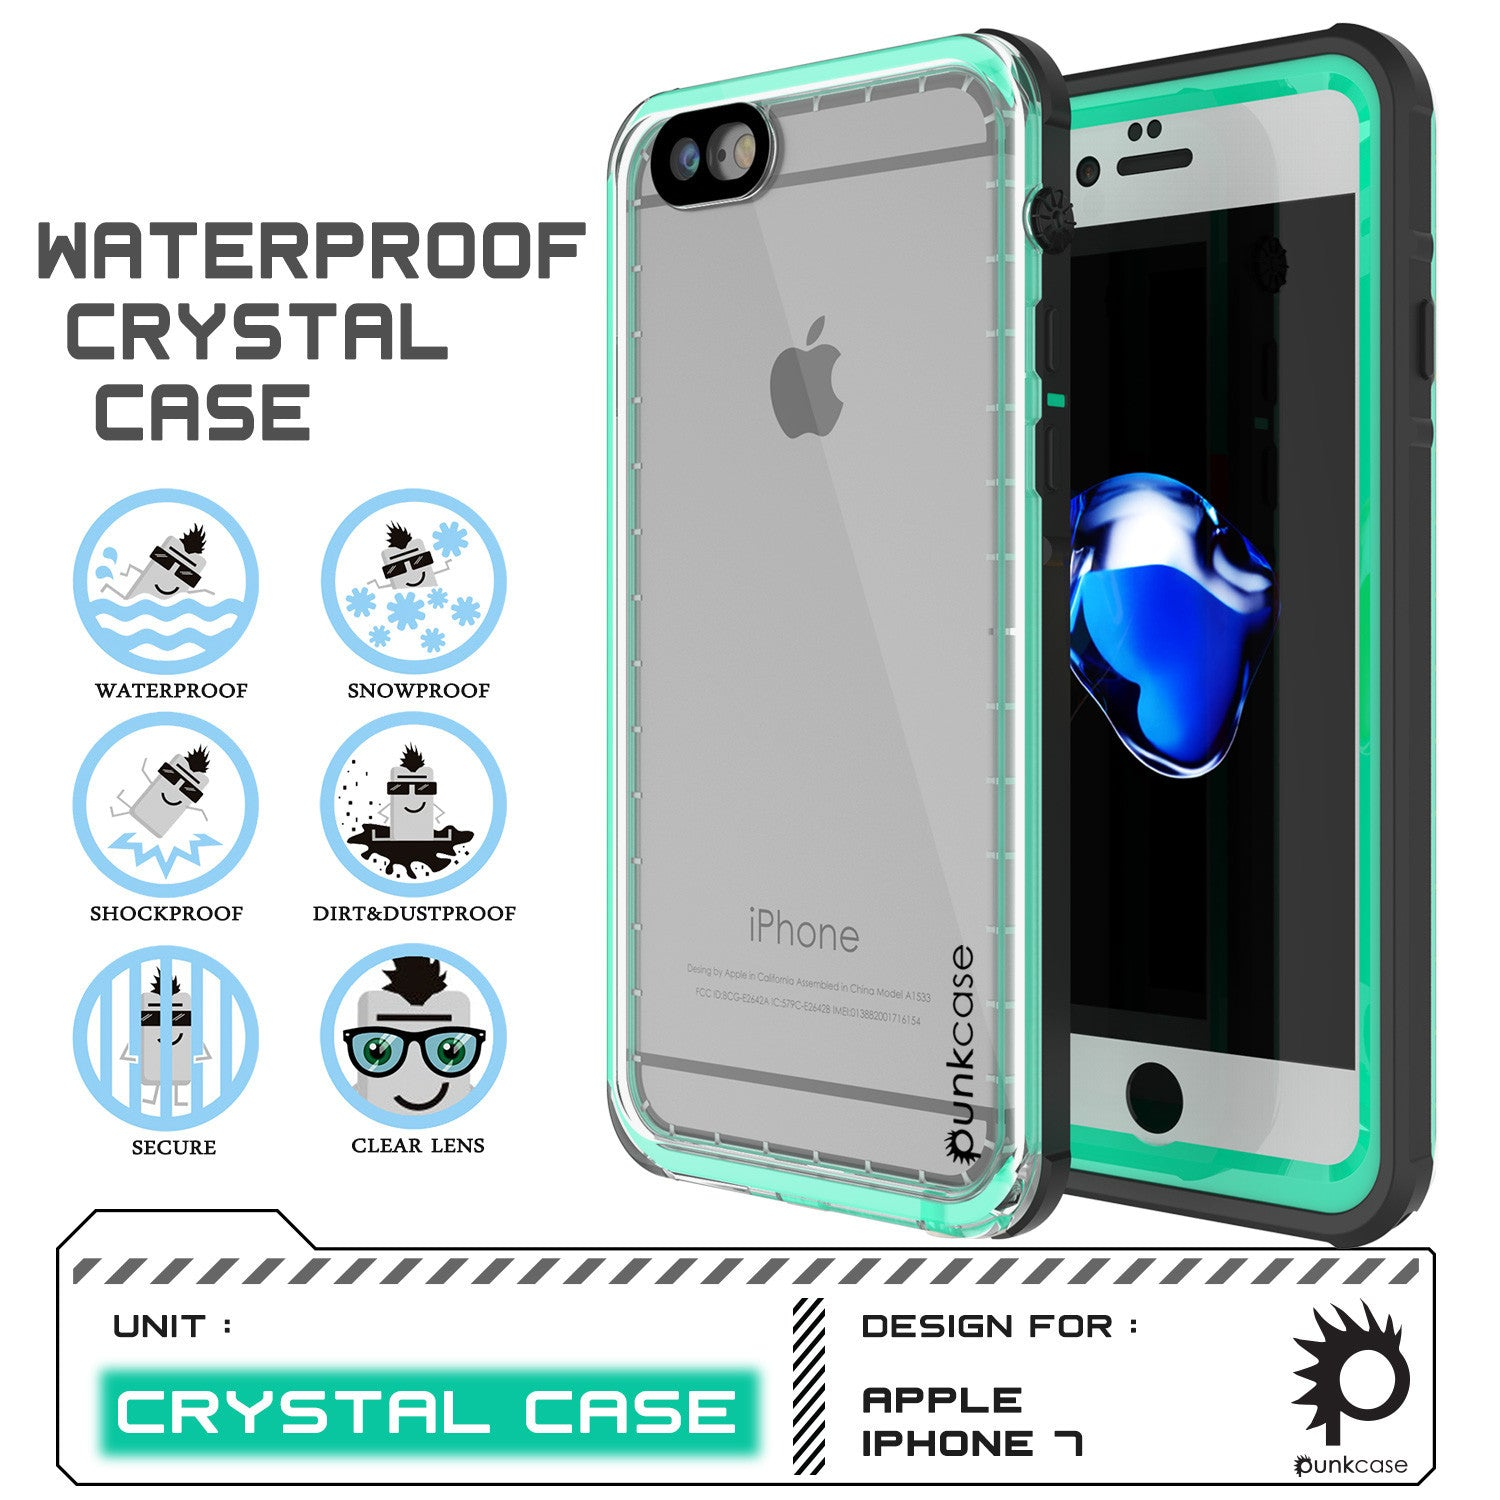 Apple iPhone 7 Waterproof Case, PUNKcase CRYSTAL Teal W/ Attached Screen Protector  | Warranty